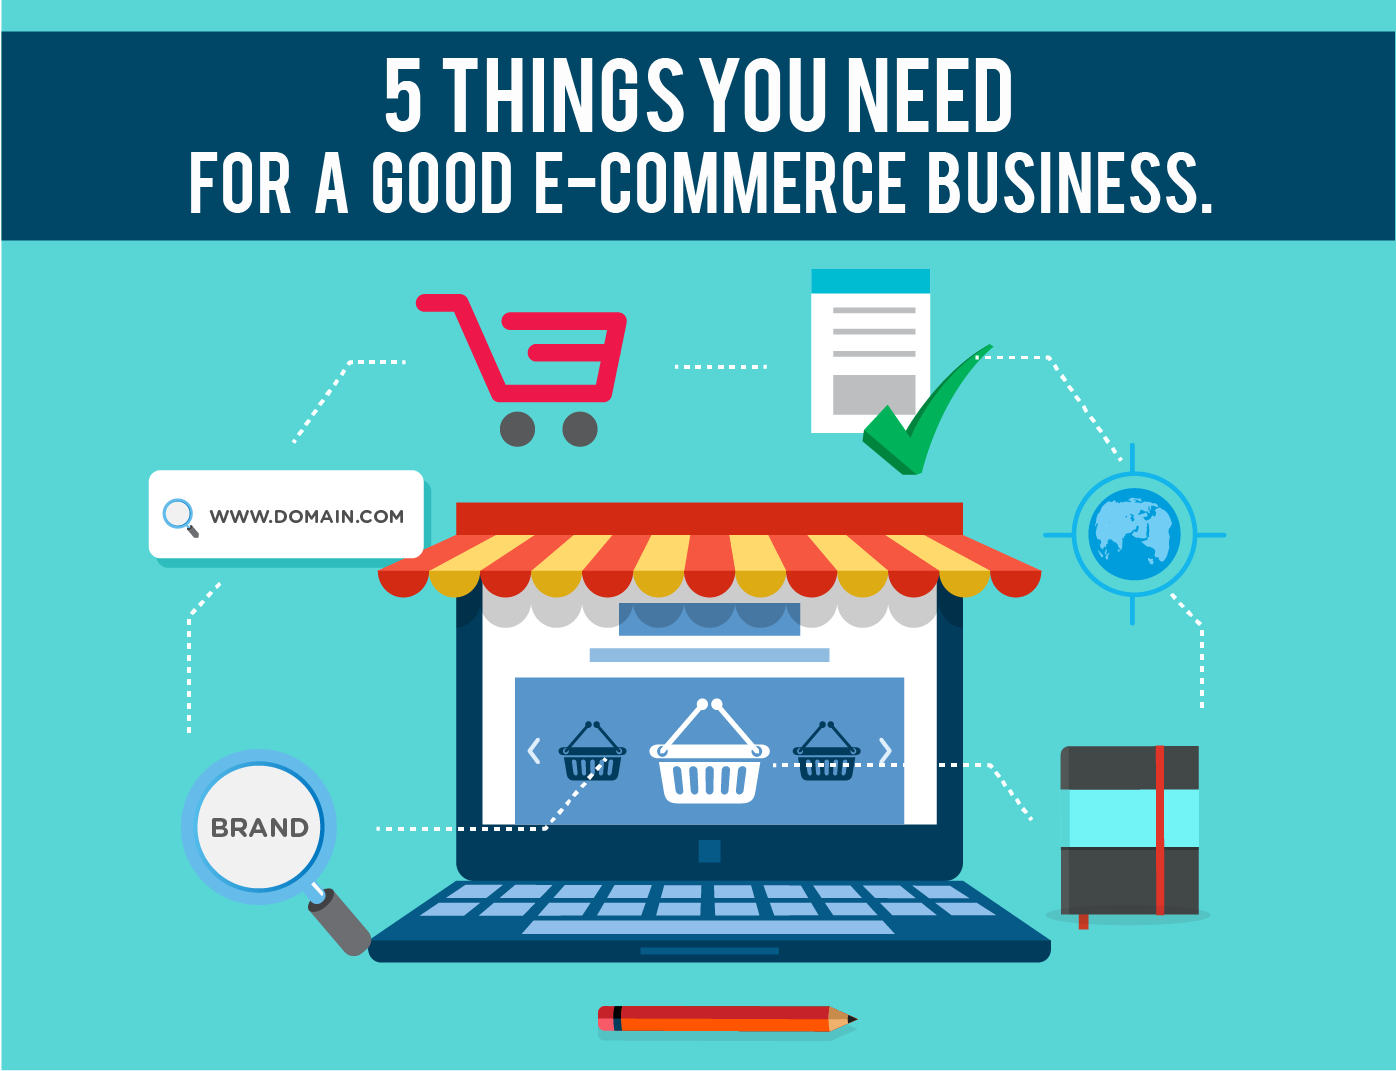 https://blog.wgs.co.id/wp-content/uploads/2016/07/5-Things-You-need-for-making-ecommerce-01-01.png